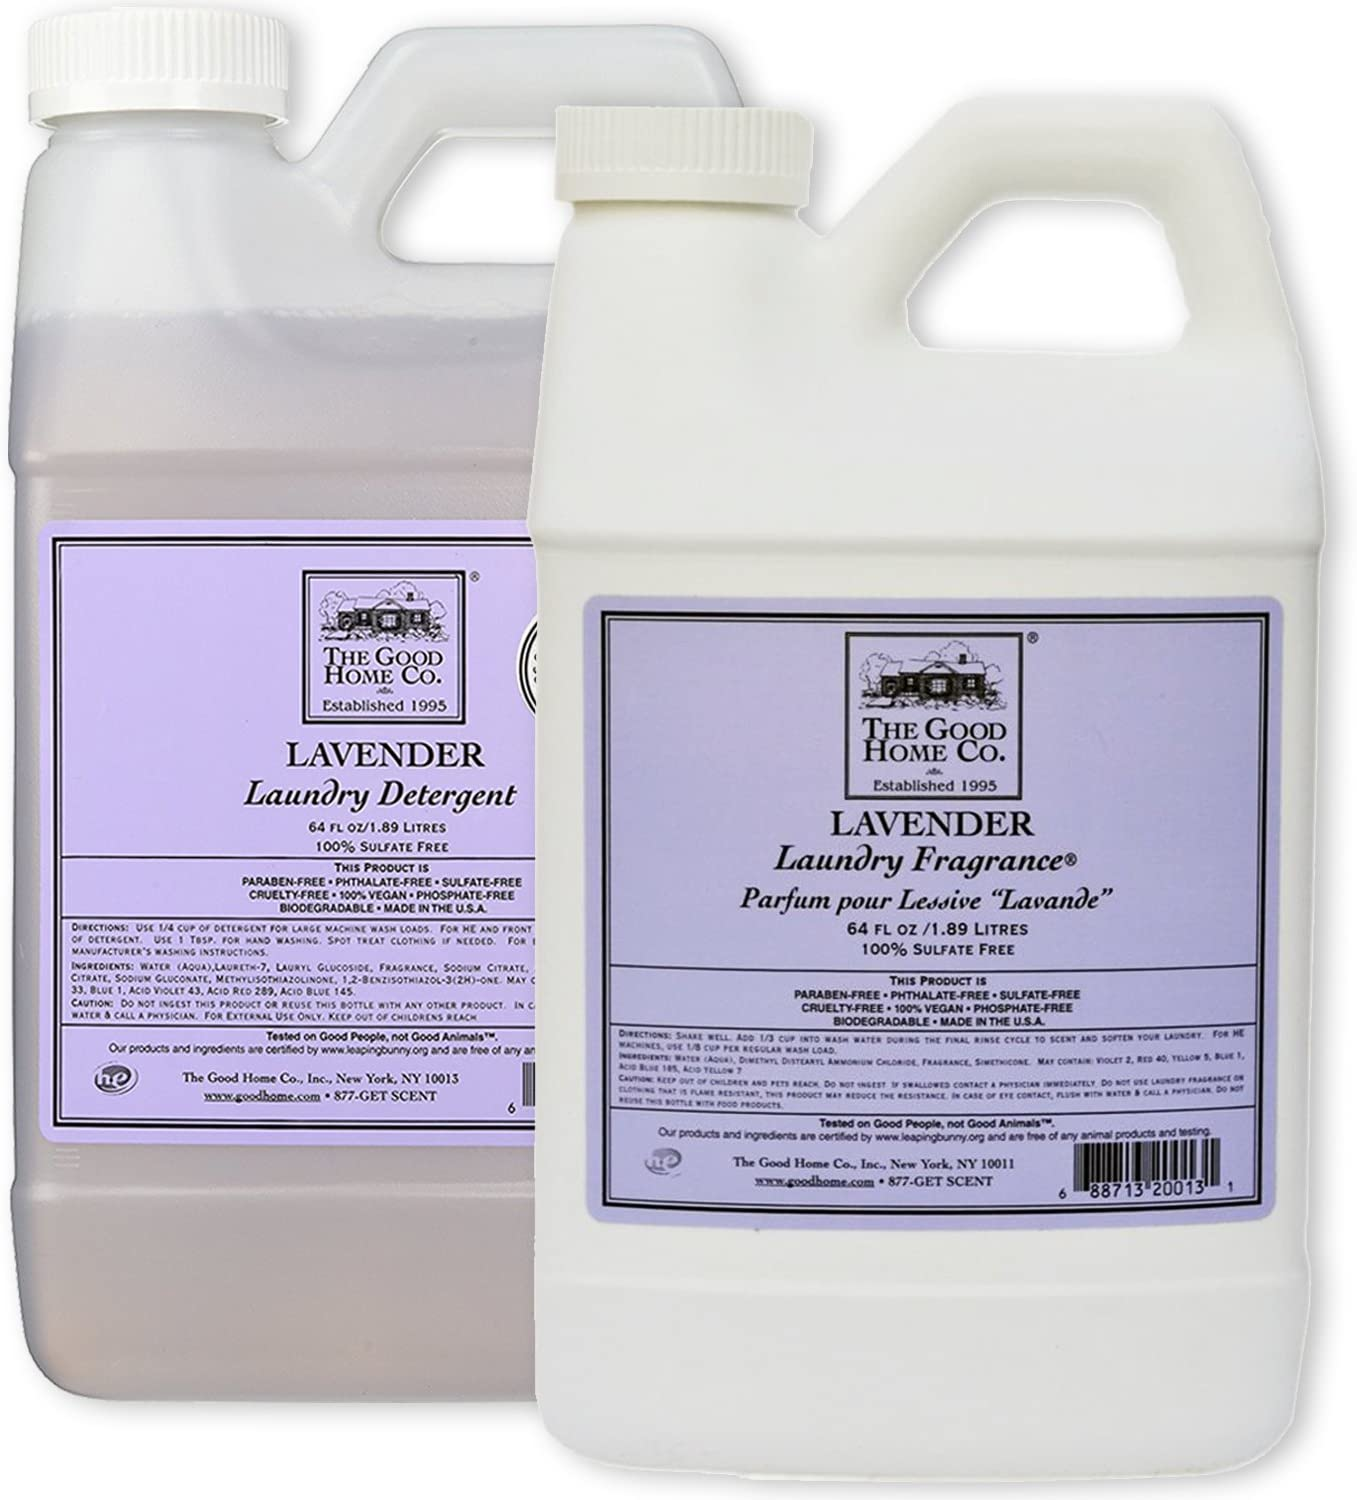 Natural Liquid Laundry Detergent Refill, 64-Load (64 fl. Oz) + Liquid Laundry Fabric Softener 64 Oz. Refill - The Good Home, Scent - Lavender